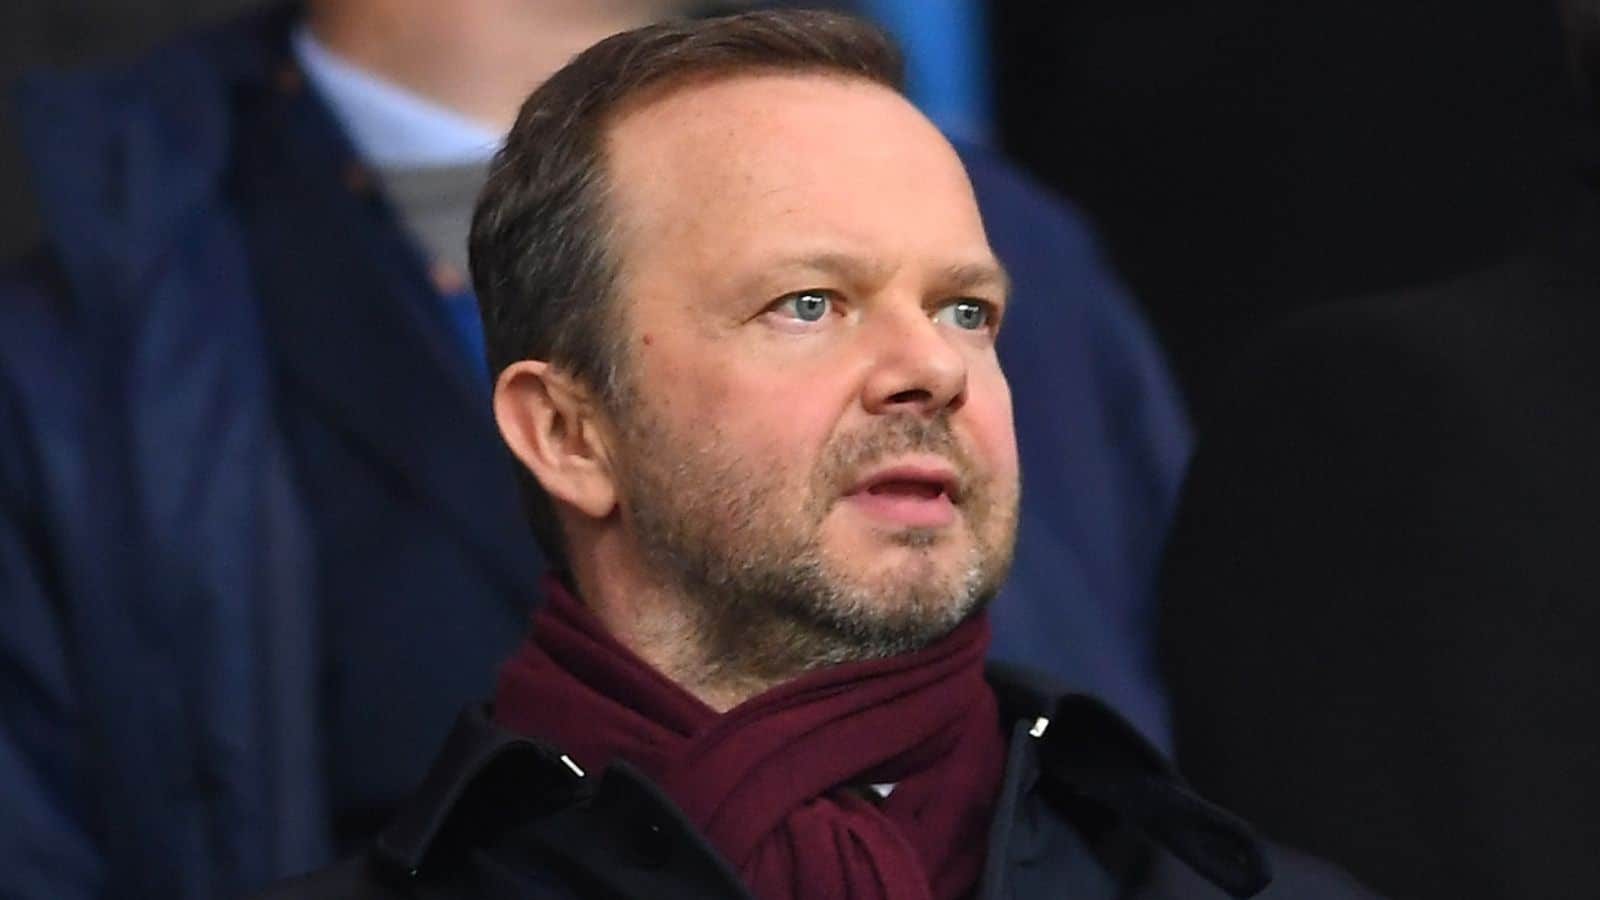 woodward-resigned-over-belief-he-couldnt-encourage-mountainous-league.jpg